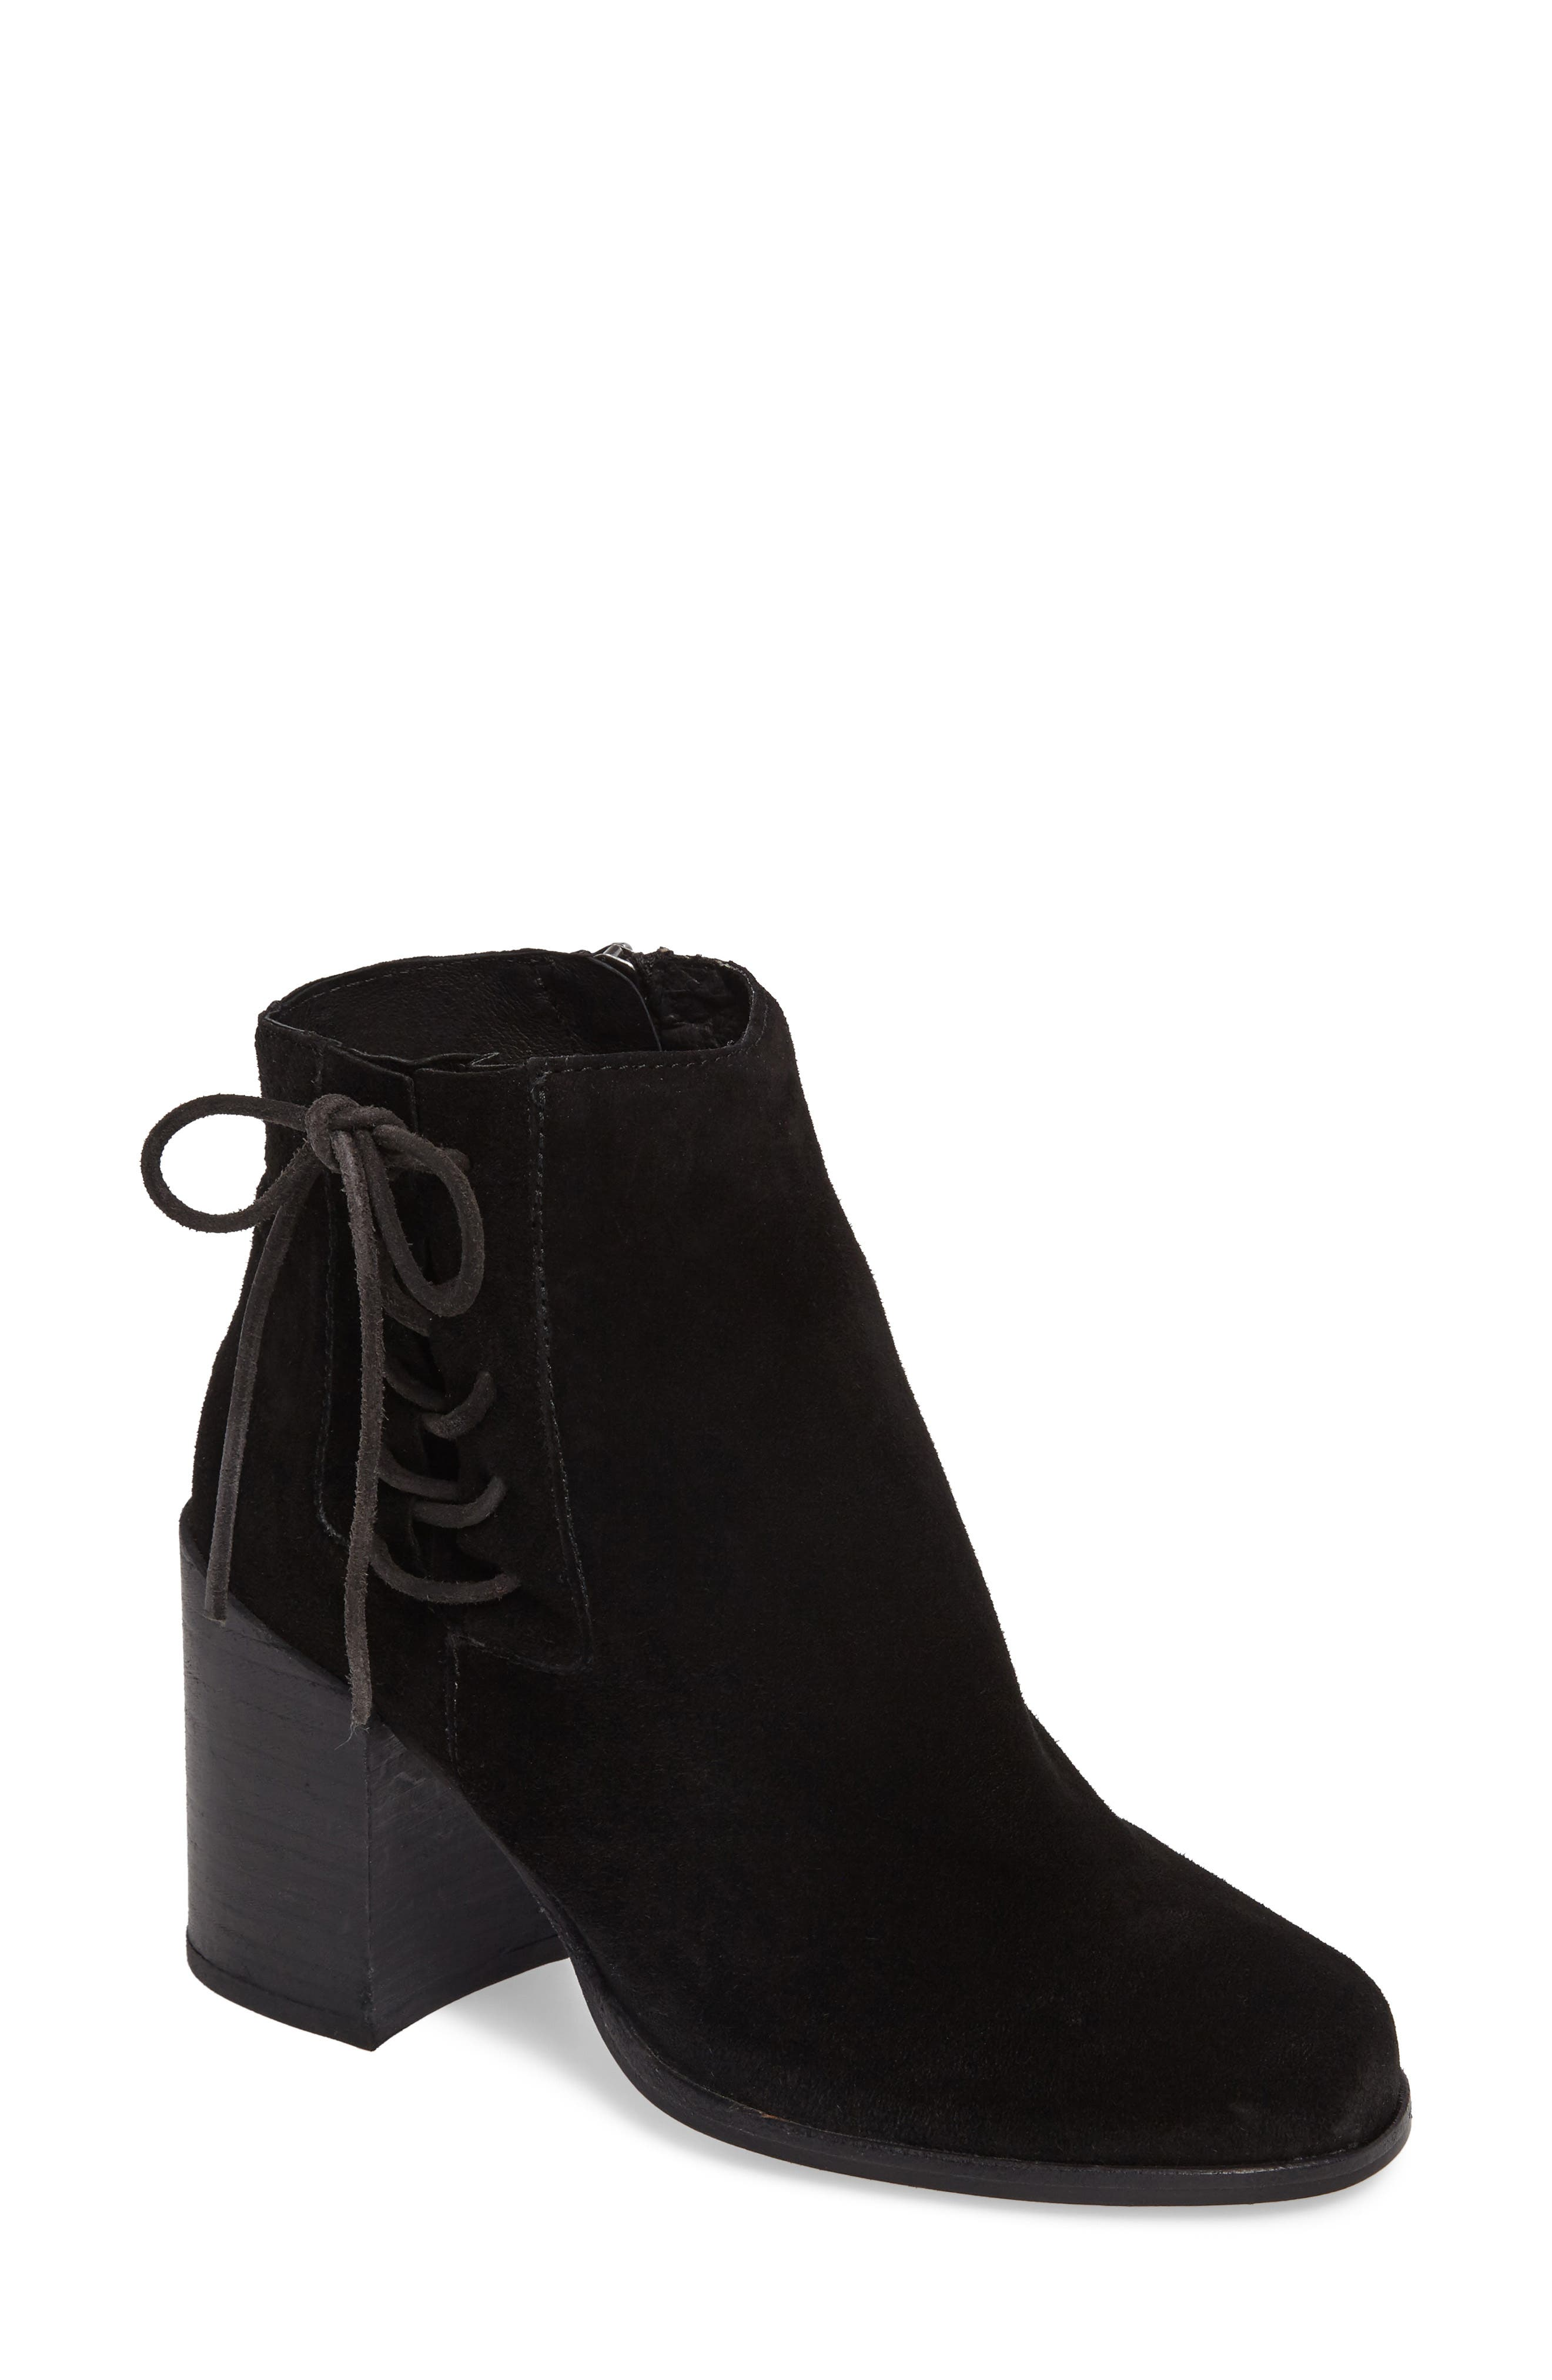 Main Image - BASKE california Dream On Bootie (Women)